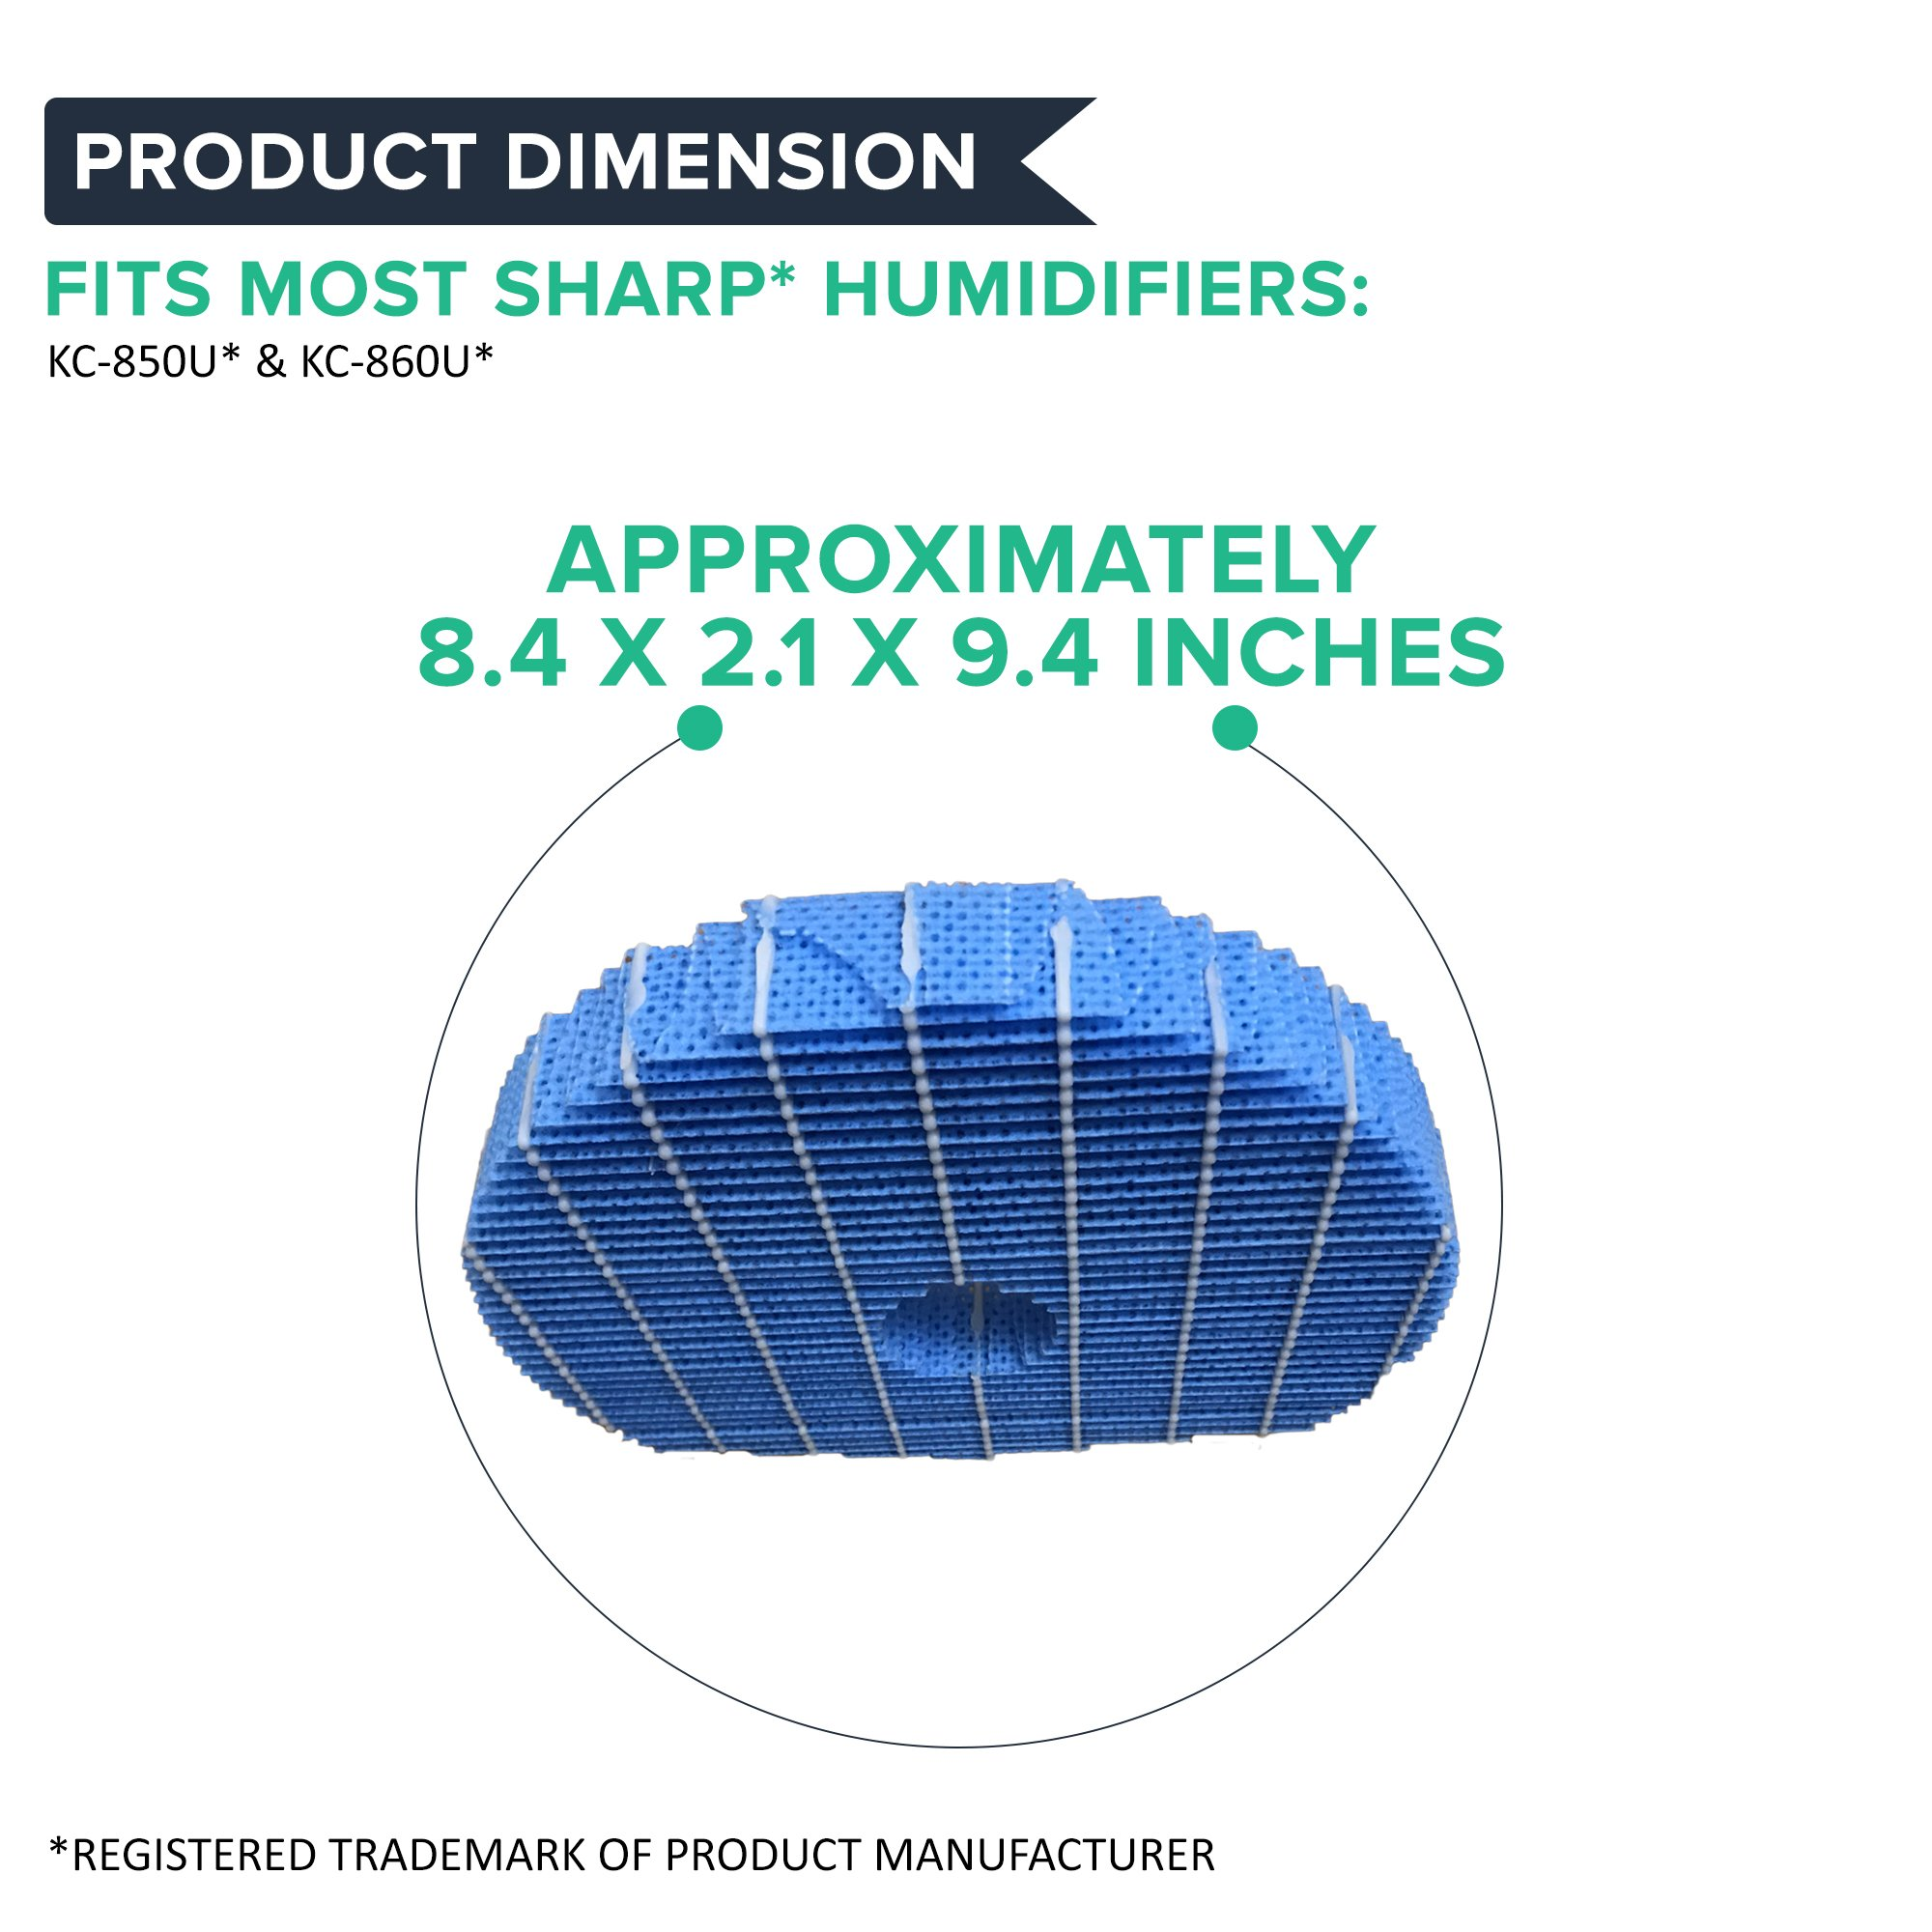 Think Crucial Replacement For Sharp Humidifier Filter Fits KC-850U & KC-860U by Think Crucial (Image #4)